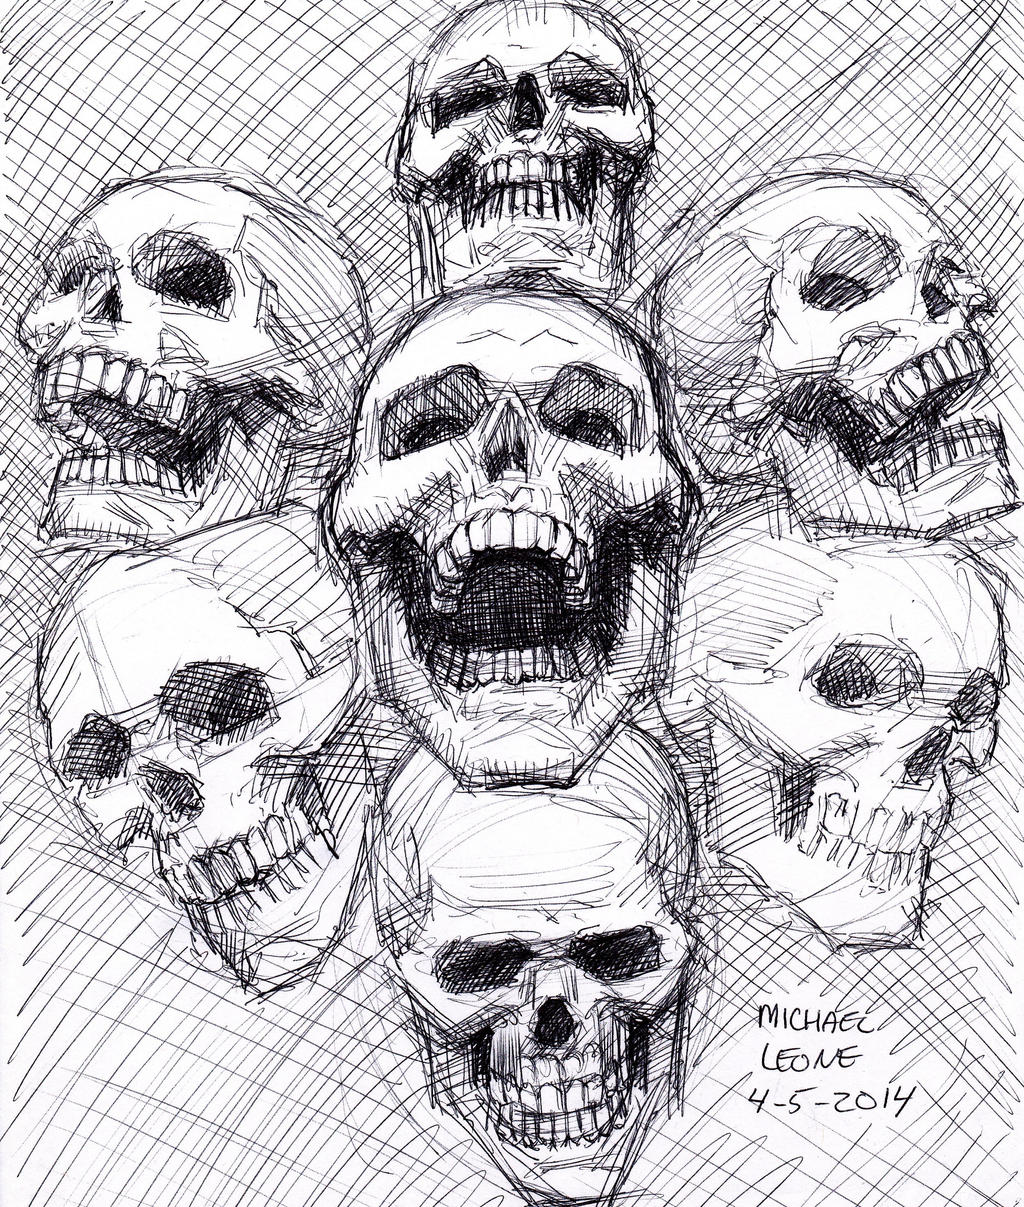 Skull Sketch 4-5-2014 by myconius